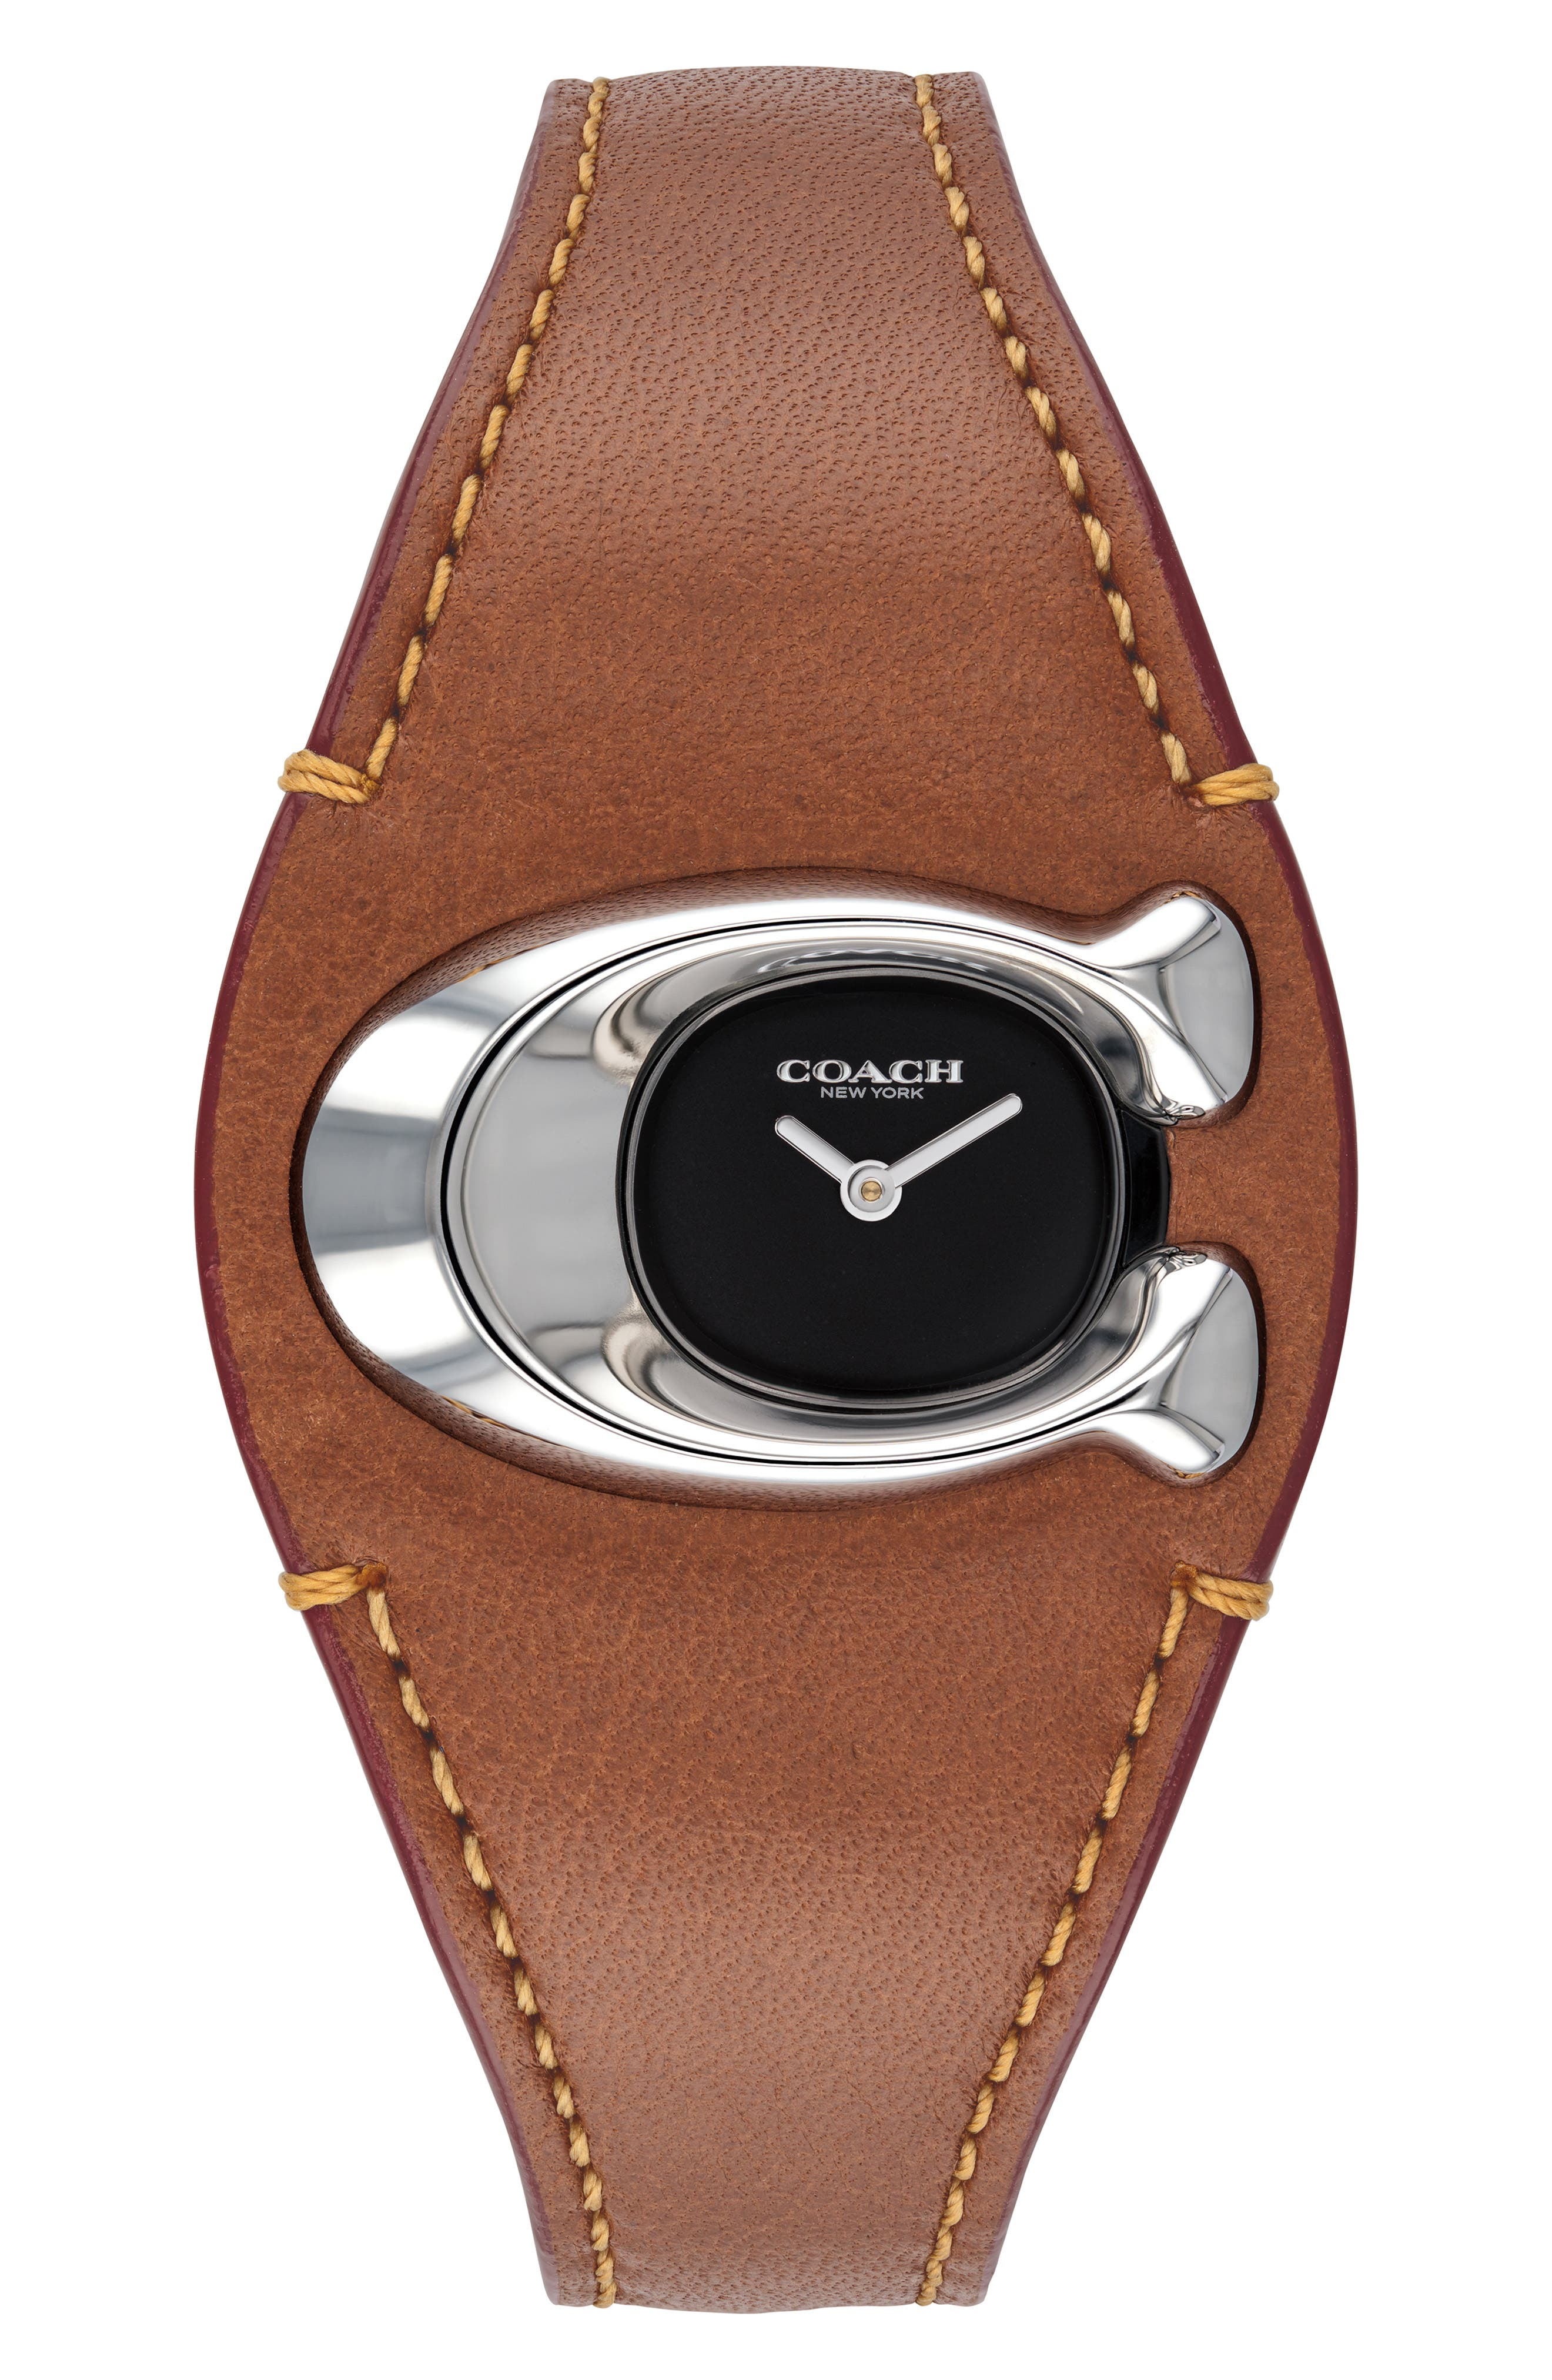 COACH,                             Signature C Leather Strap Watch, 29mm x 21mm,                             Main thumbnail 1, color,                             200